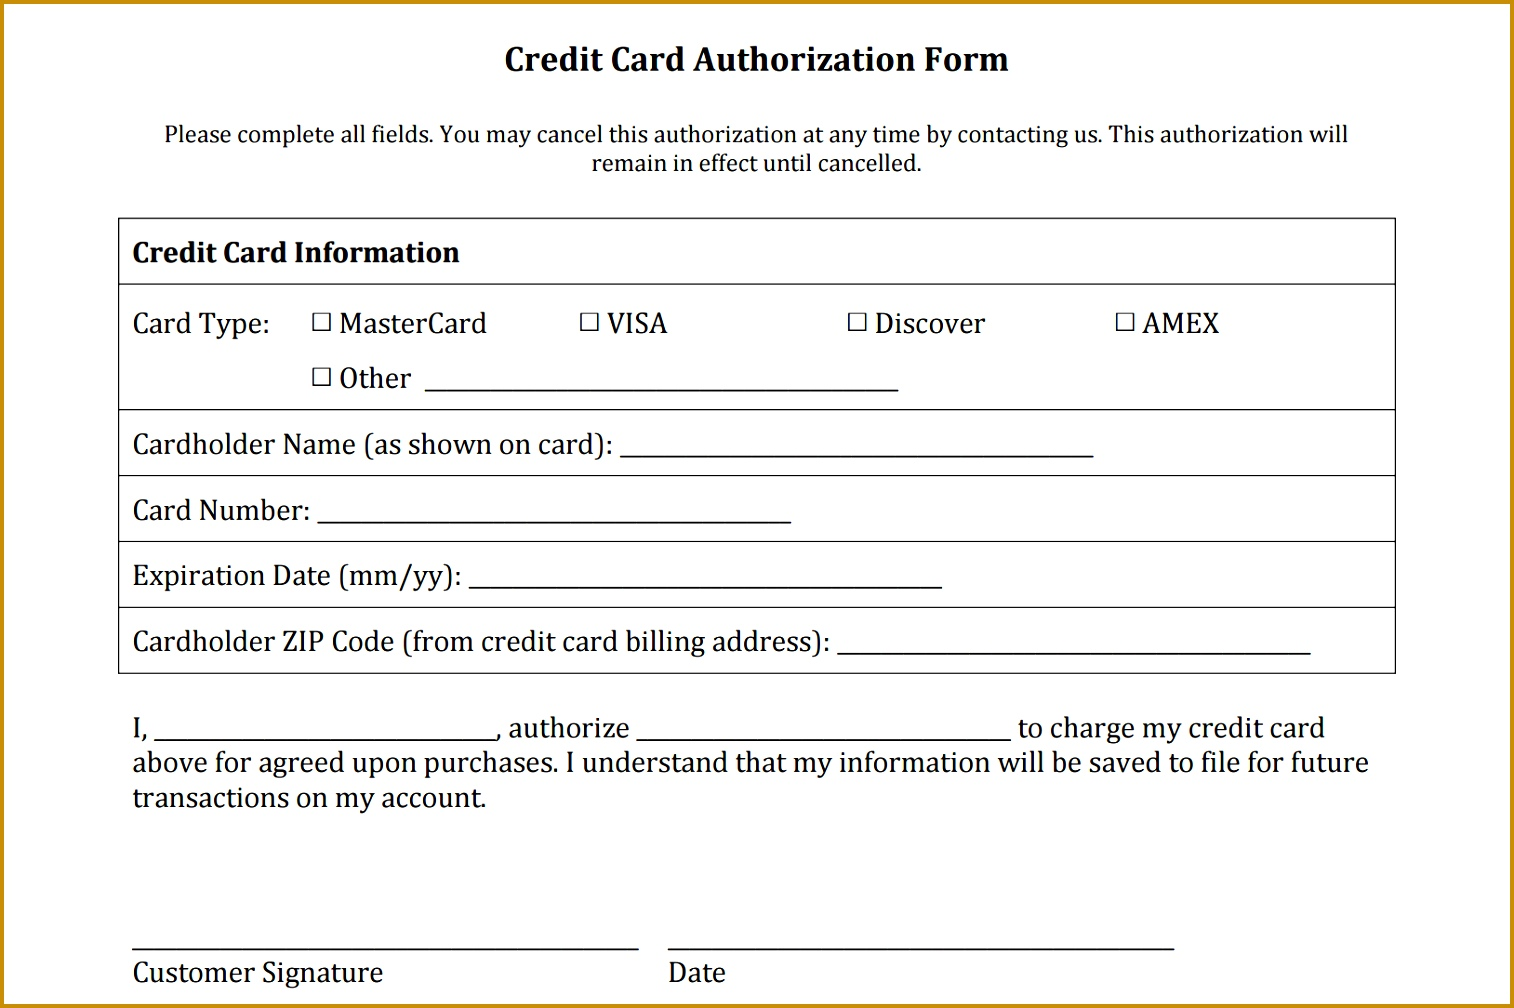 5 sports registration form template free fabtemplatez fabtemplatez credit authorization form 10081514 pronofoot35fo Choice Image